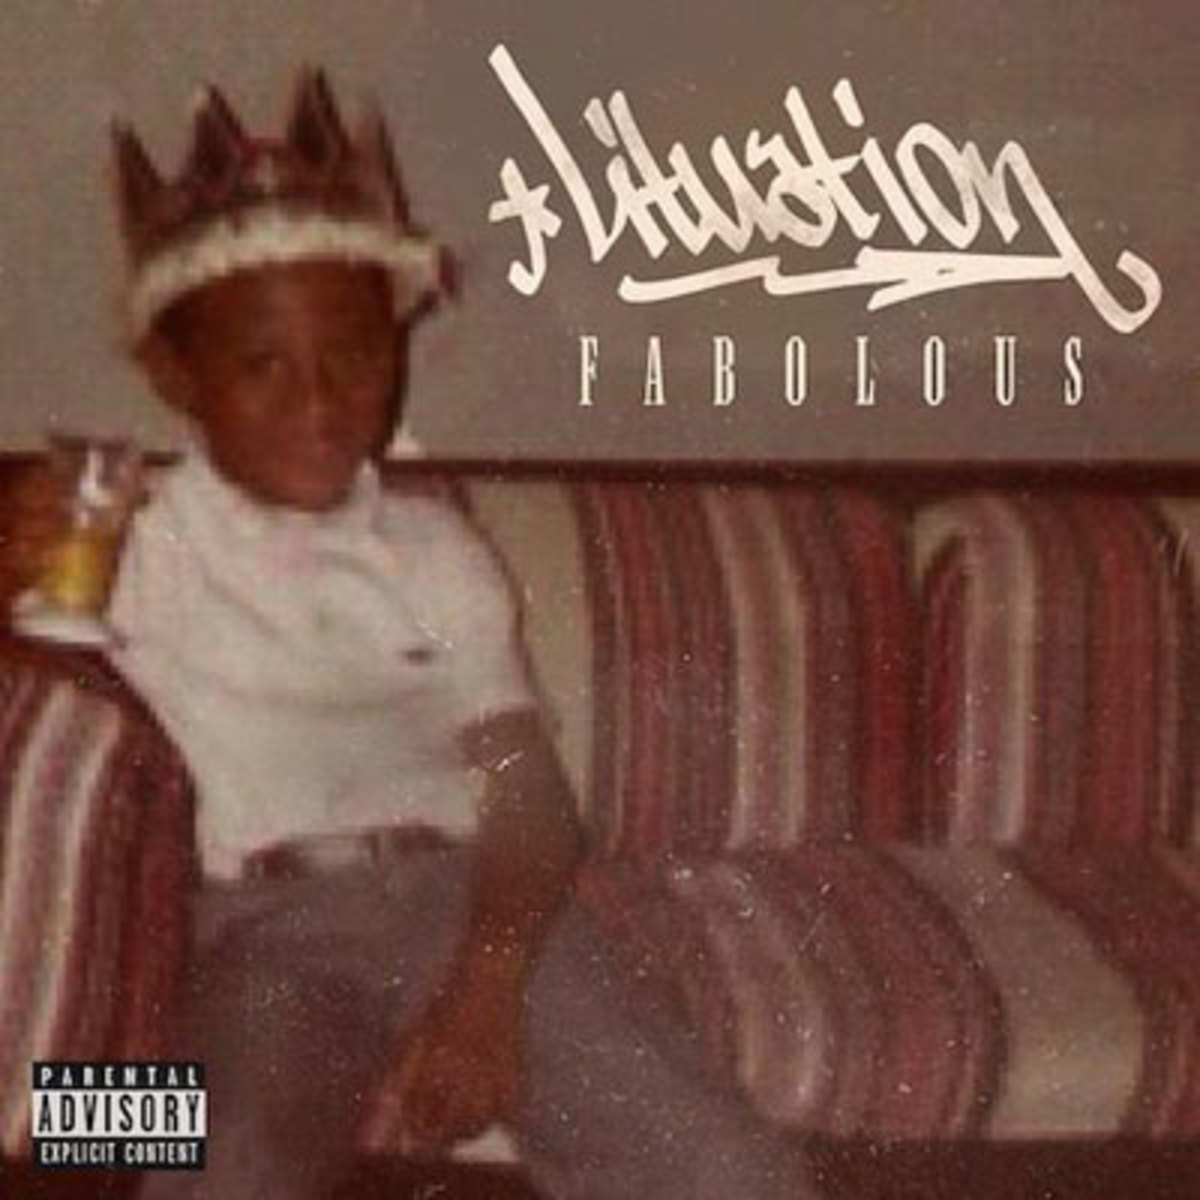 fabolous-lituation.jpg